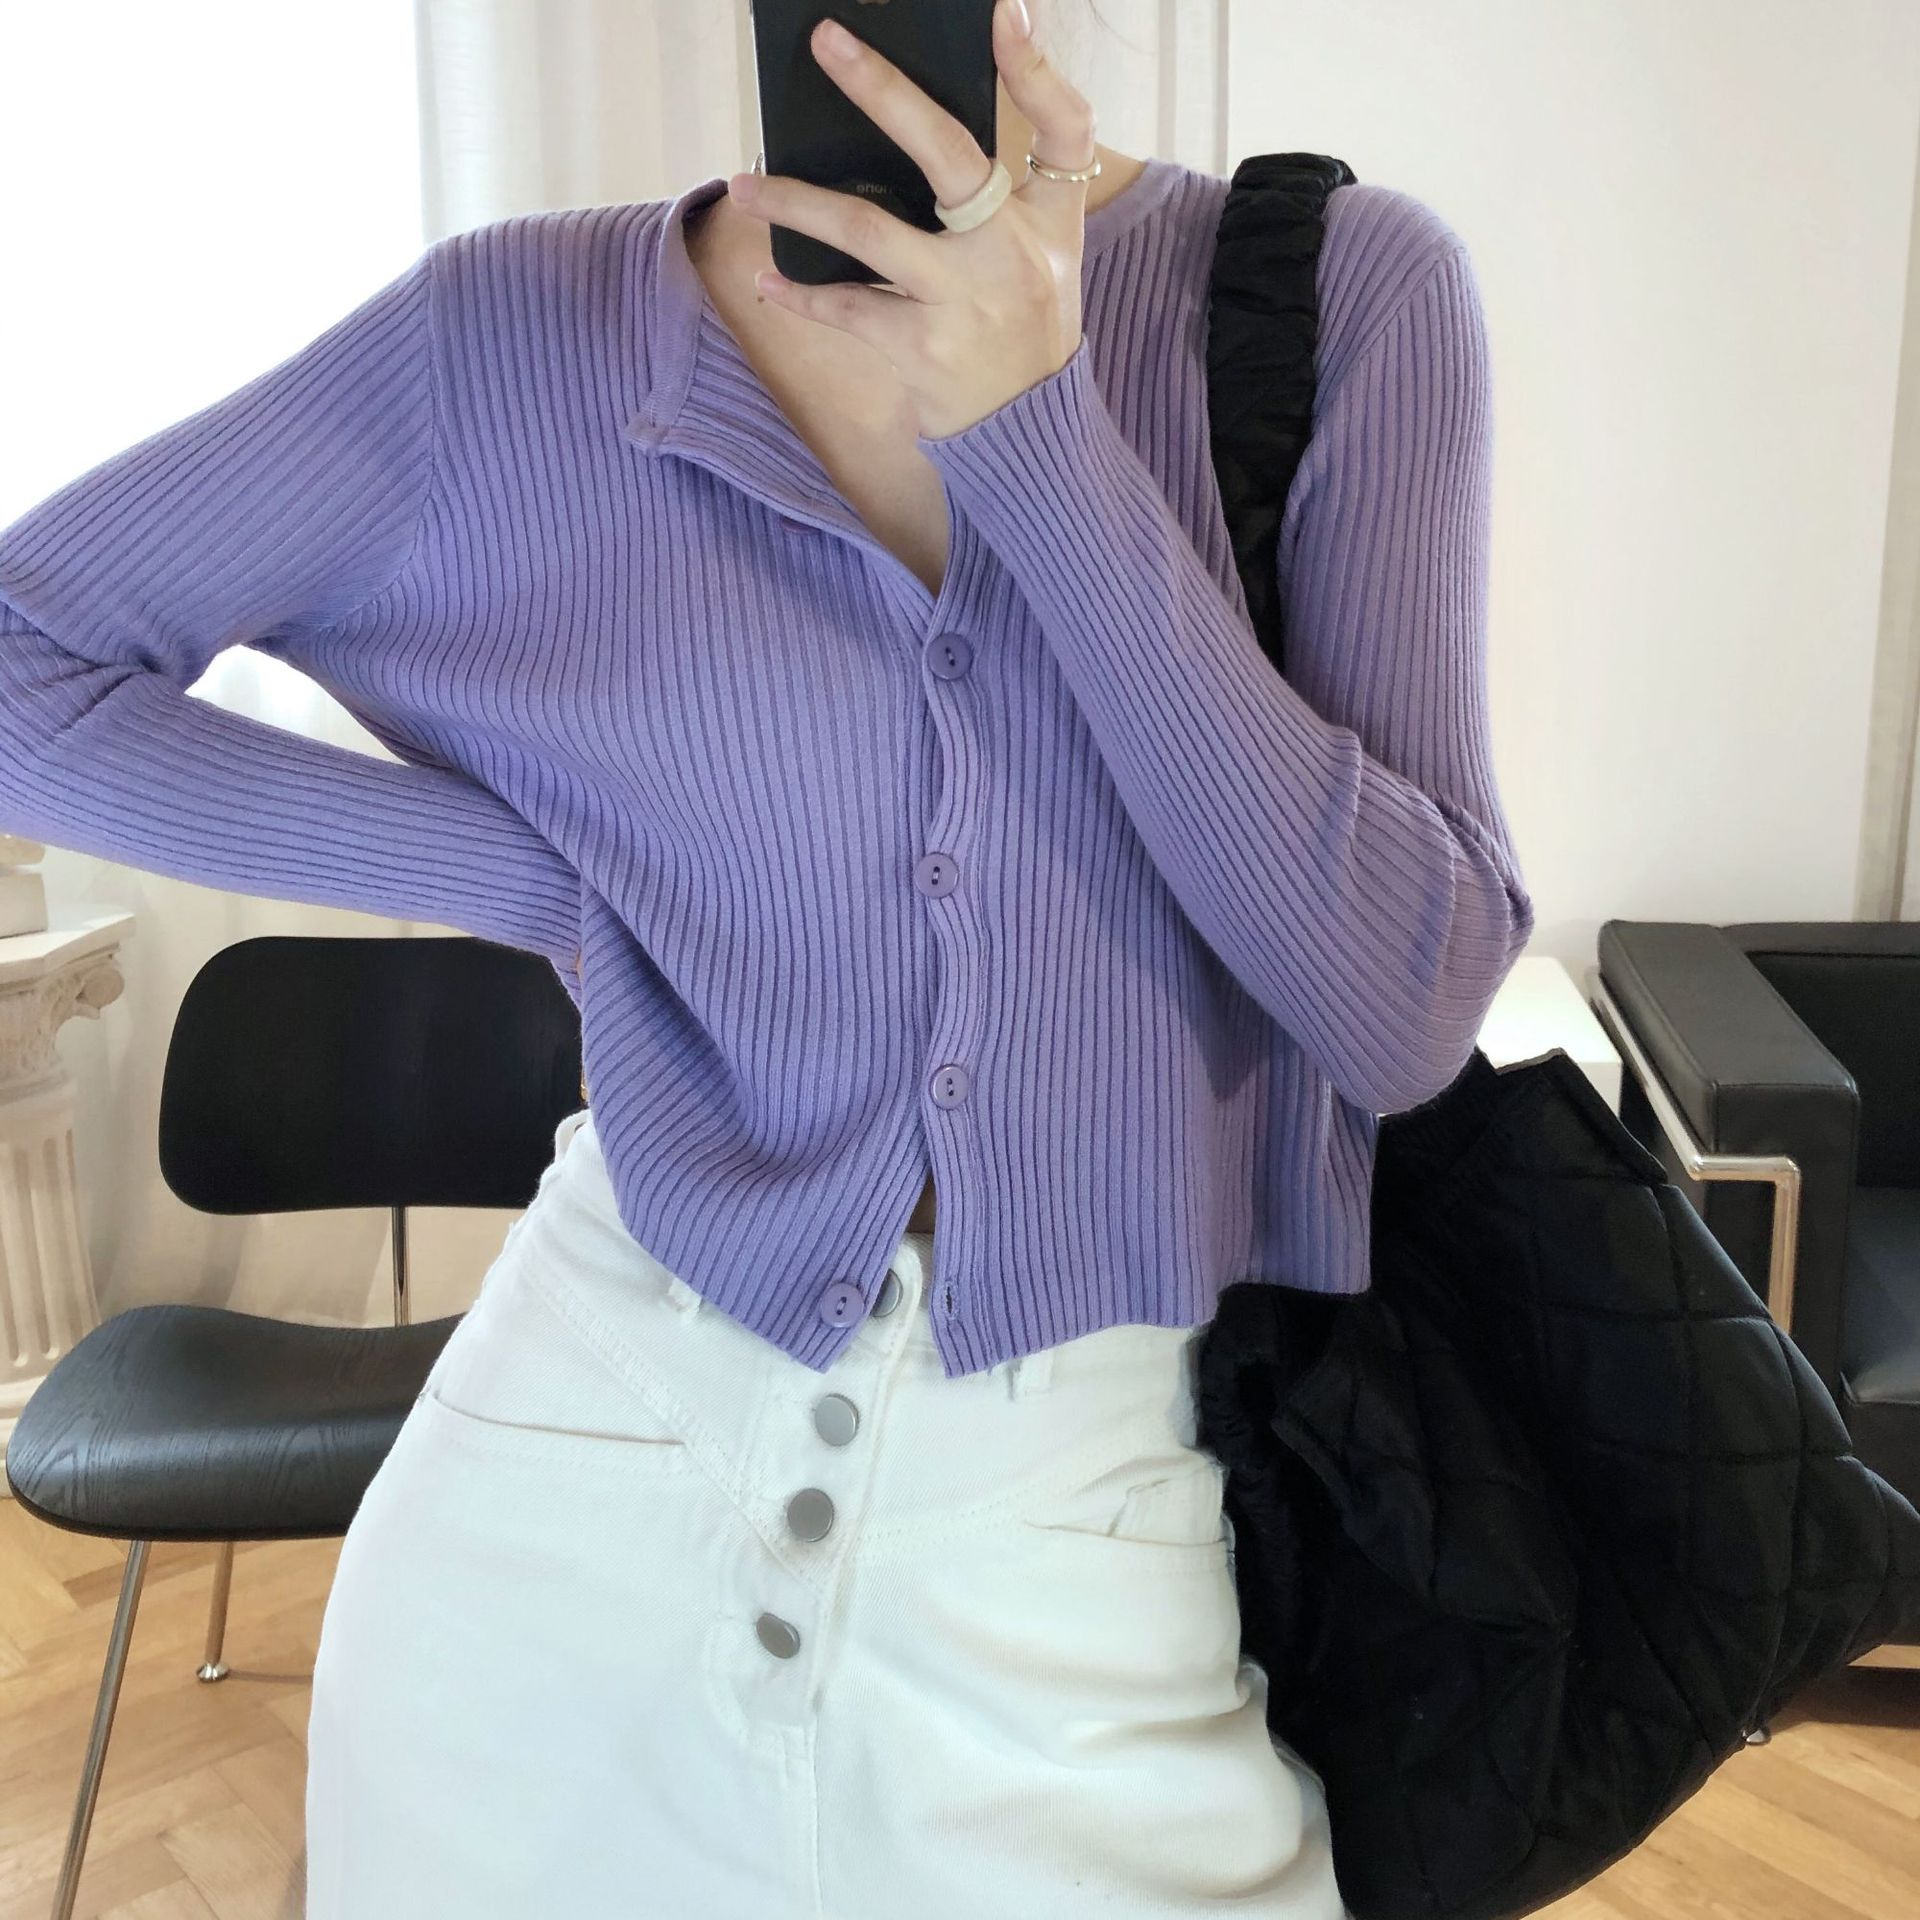 Women Cardigan Sweater New Fashion V-Neck Casual Coat Female Comfortable Style Knit Cardigan 2020 Spring Summer Knitted White